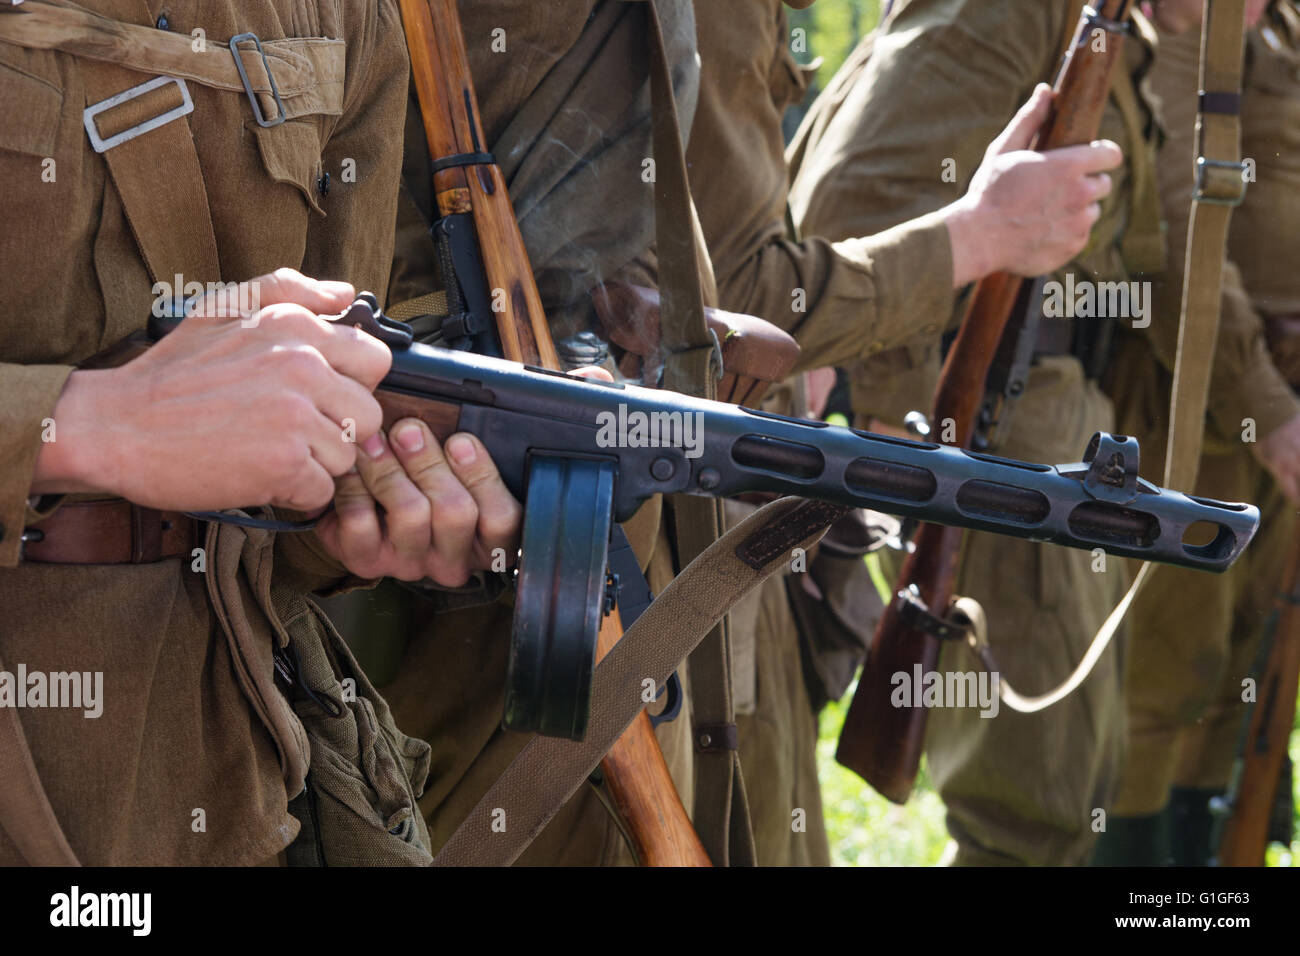 Russian machine gun in the hands of a soldier - Stock Image